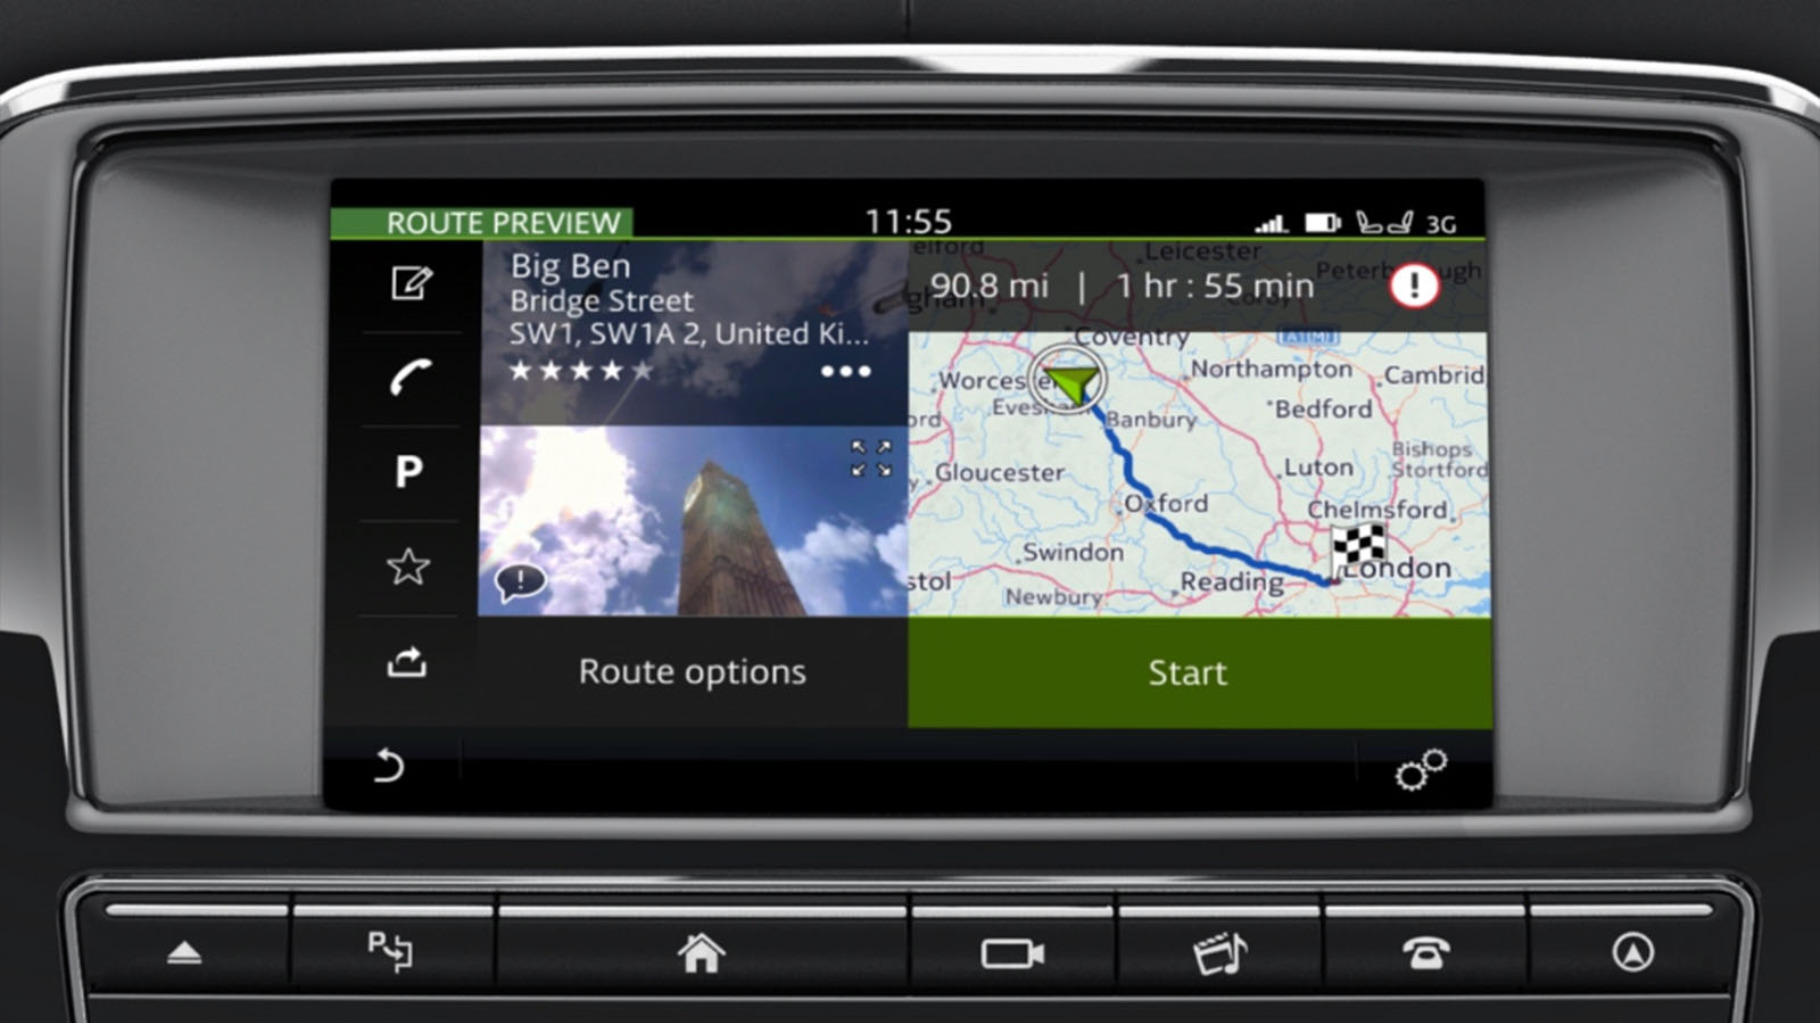 Jaguar XJ's InControl Touch Pro: Navigation - Entering a Destination information video.